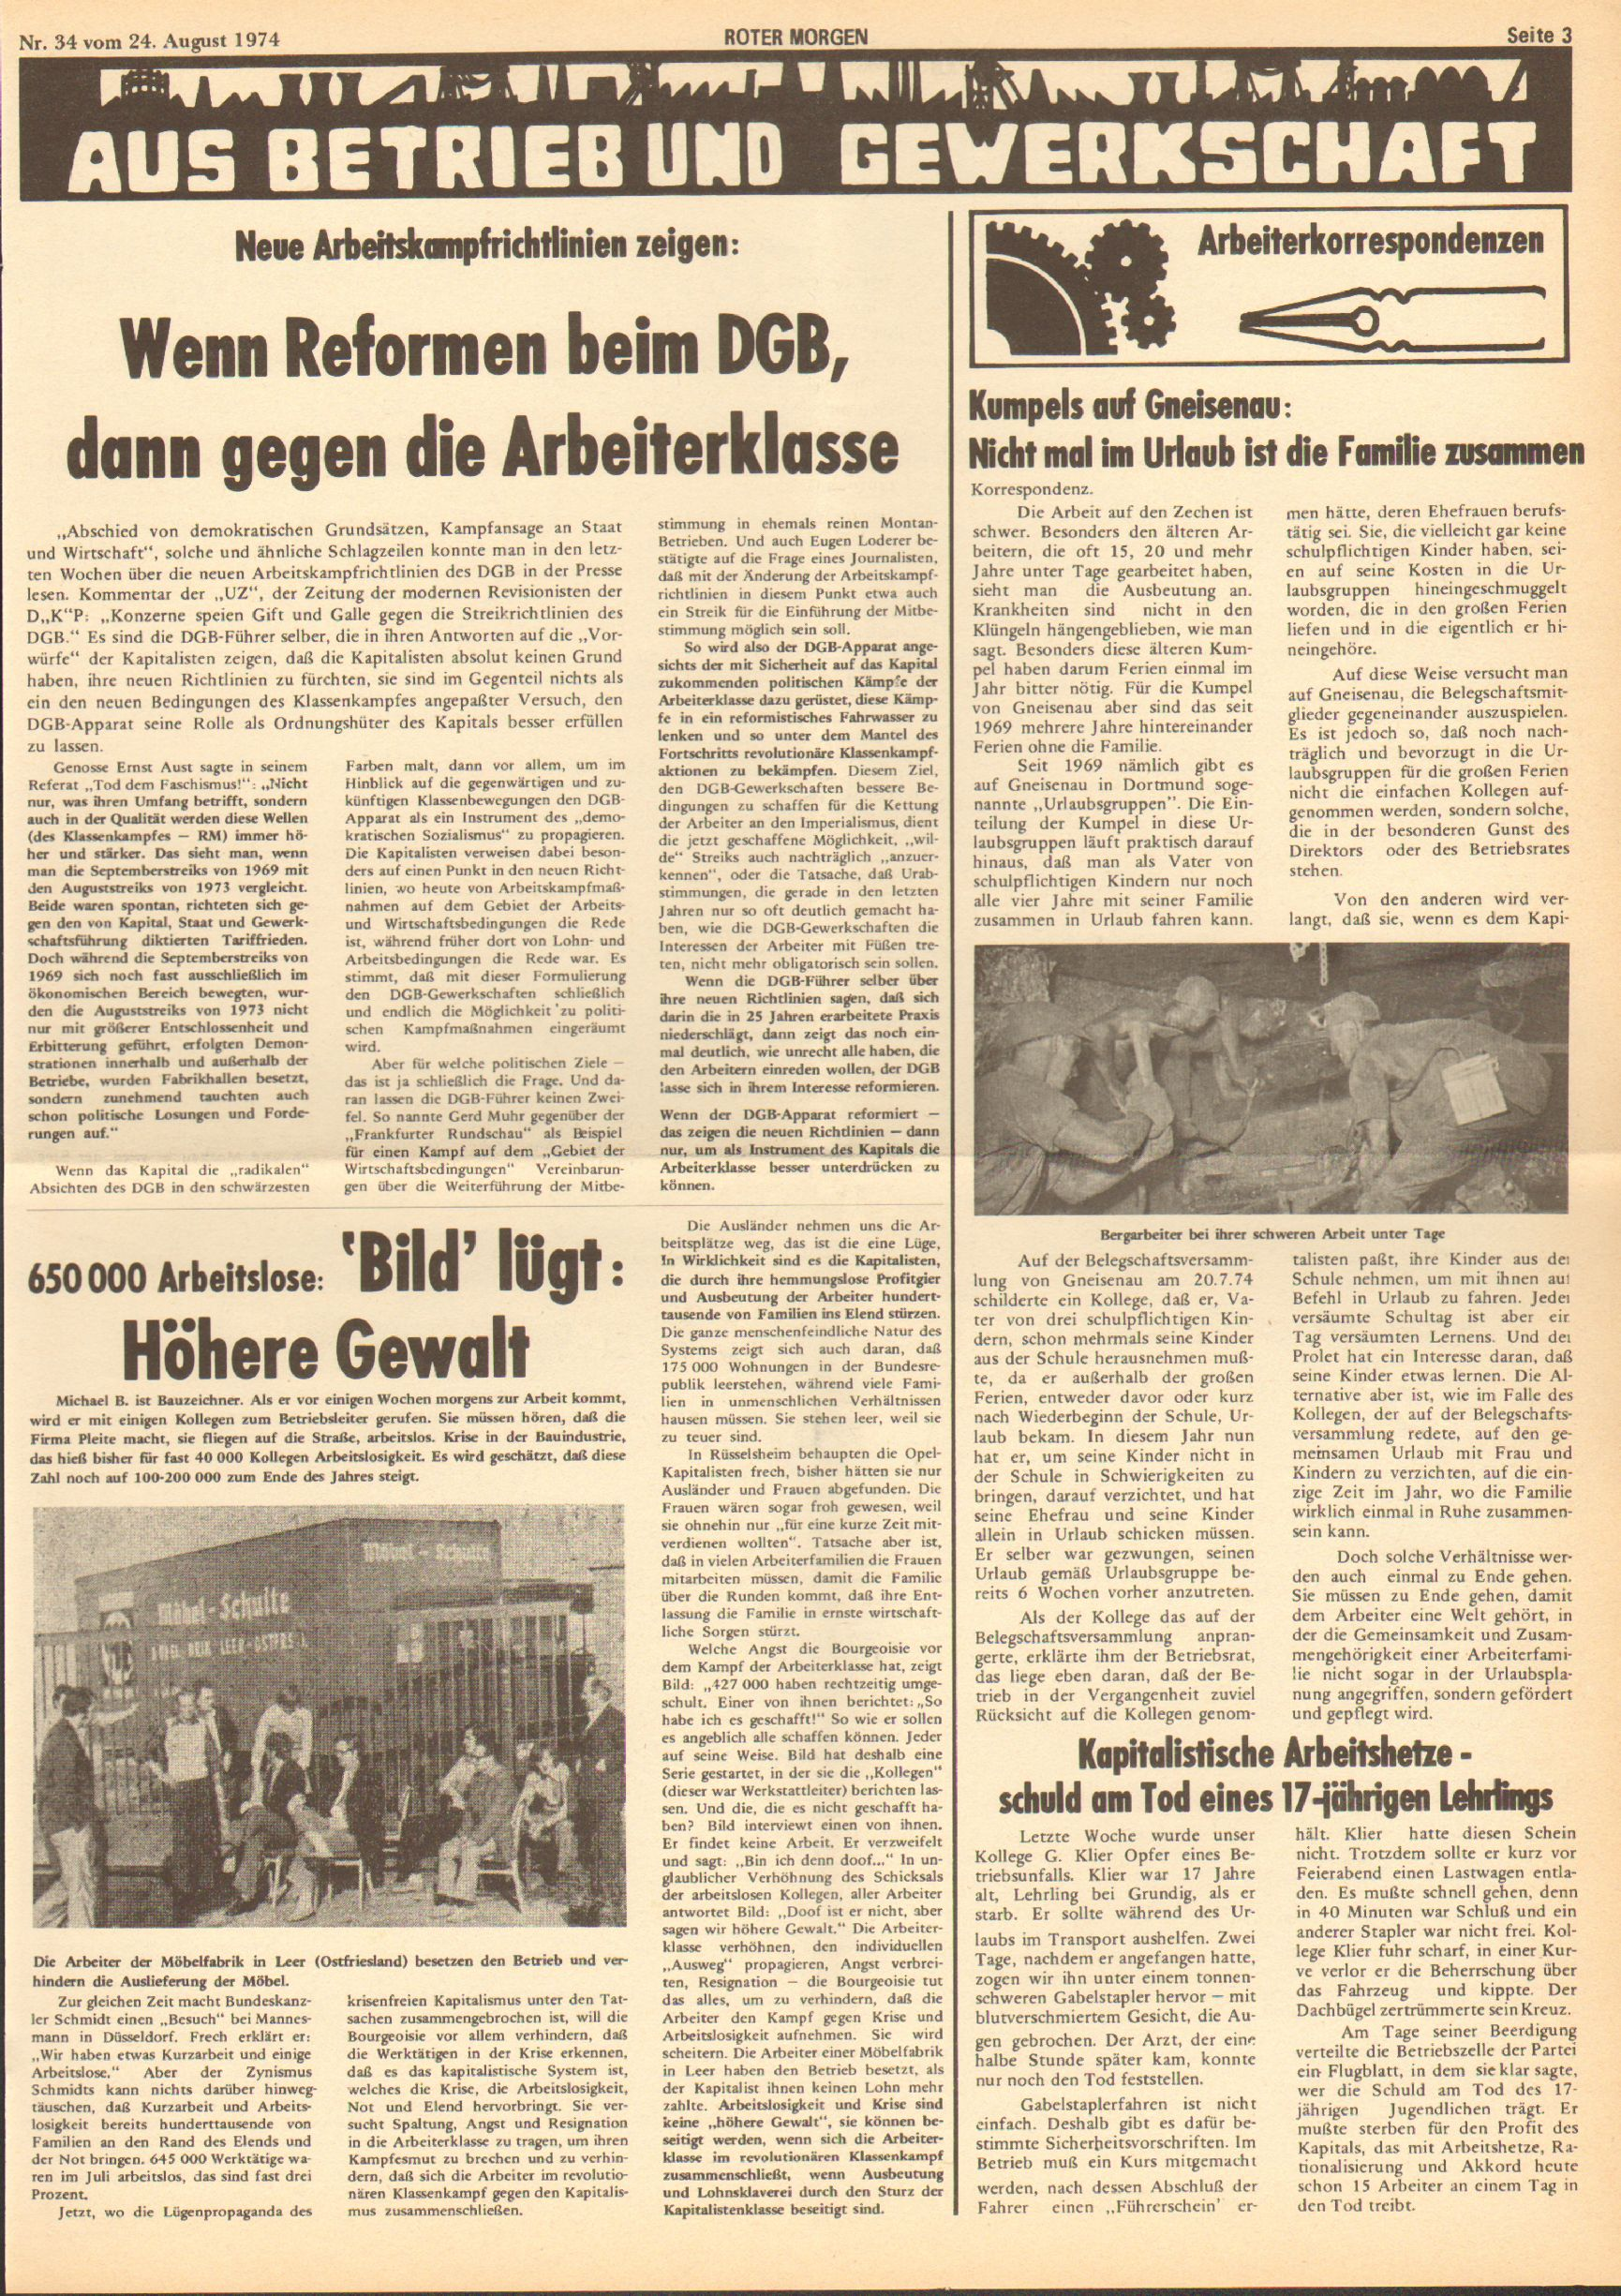 Roter Morgen, 8. Jg., 24. August 1974, Nr. 34, Seite 3